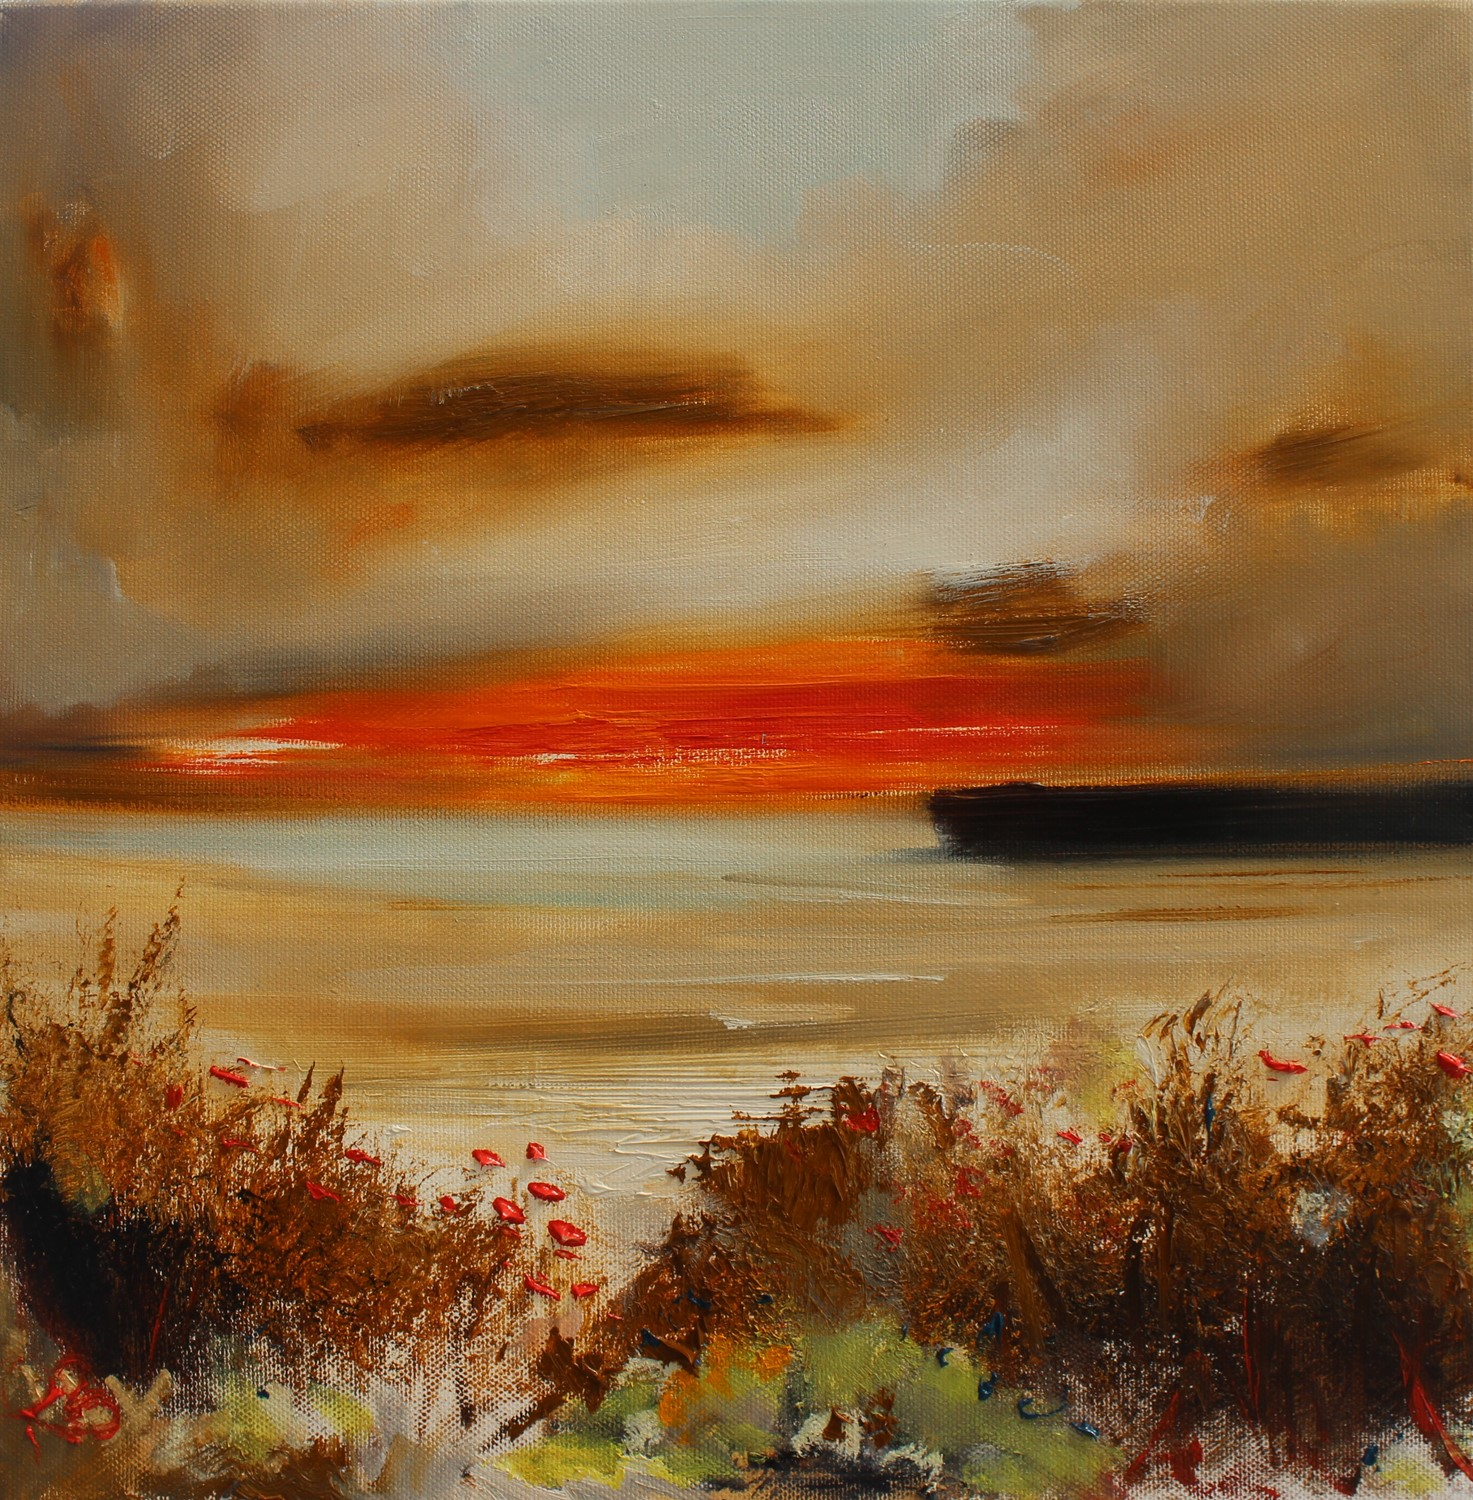 'Headed down to the Bat at Sunset' by artist Rosanne Barr